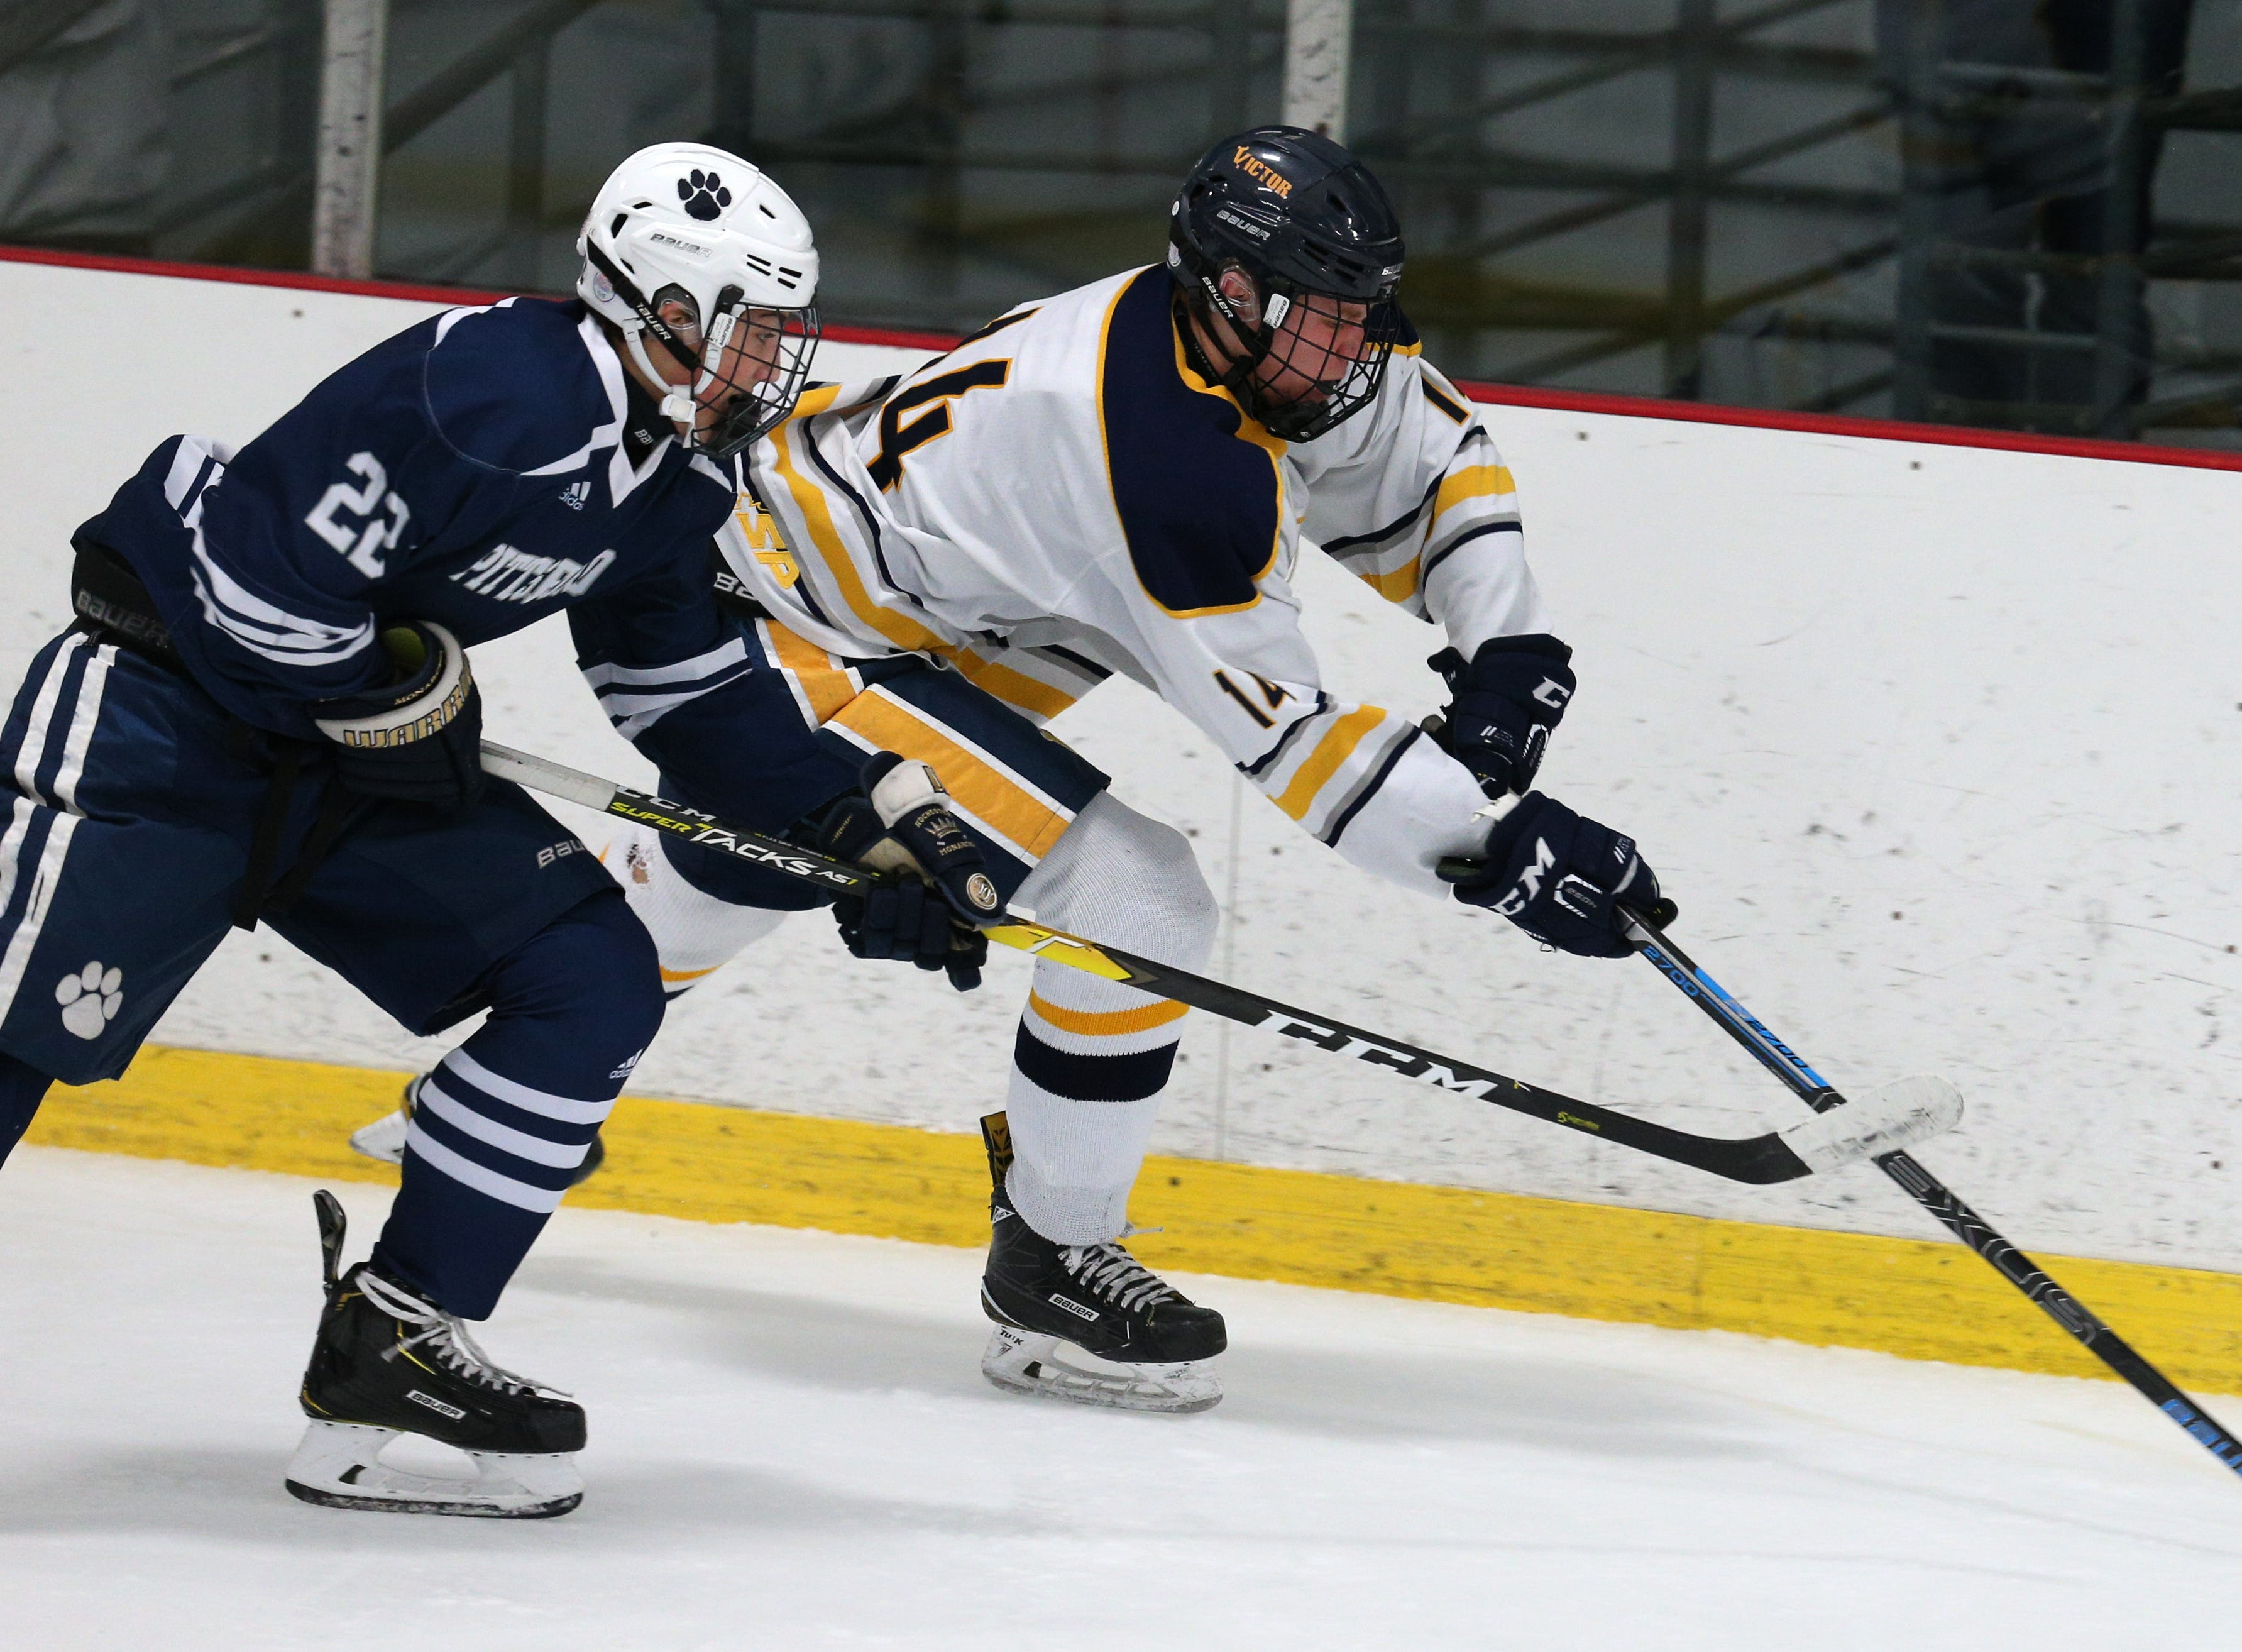 Victor #14 Peter Rydzynski against Pittsford #22 Will Masaschi.